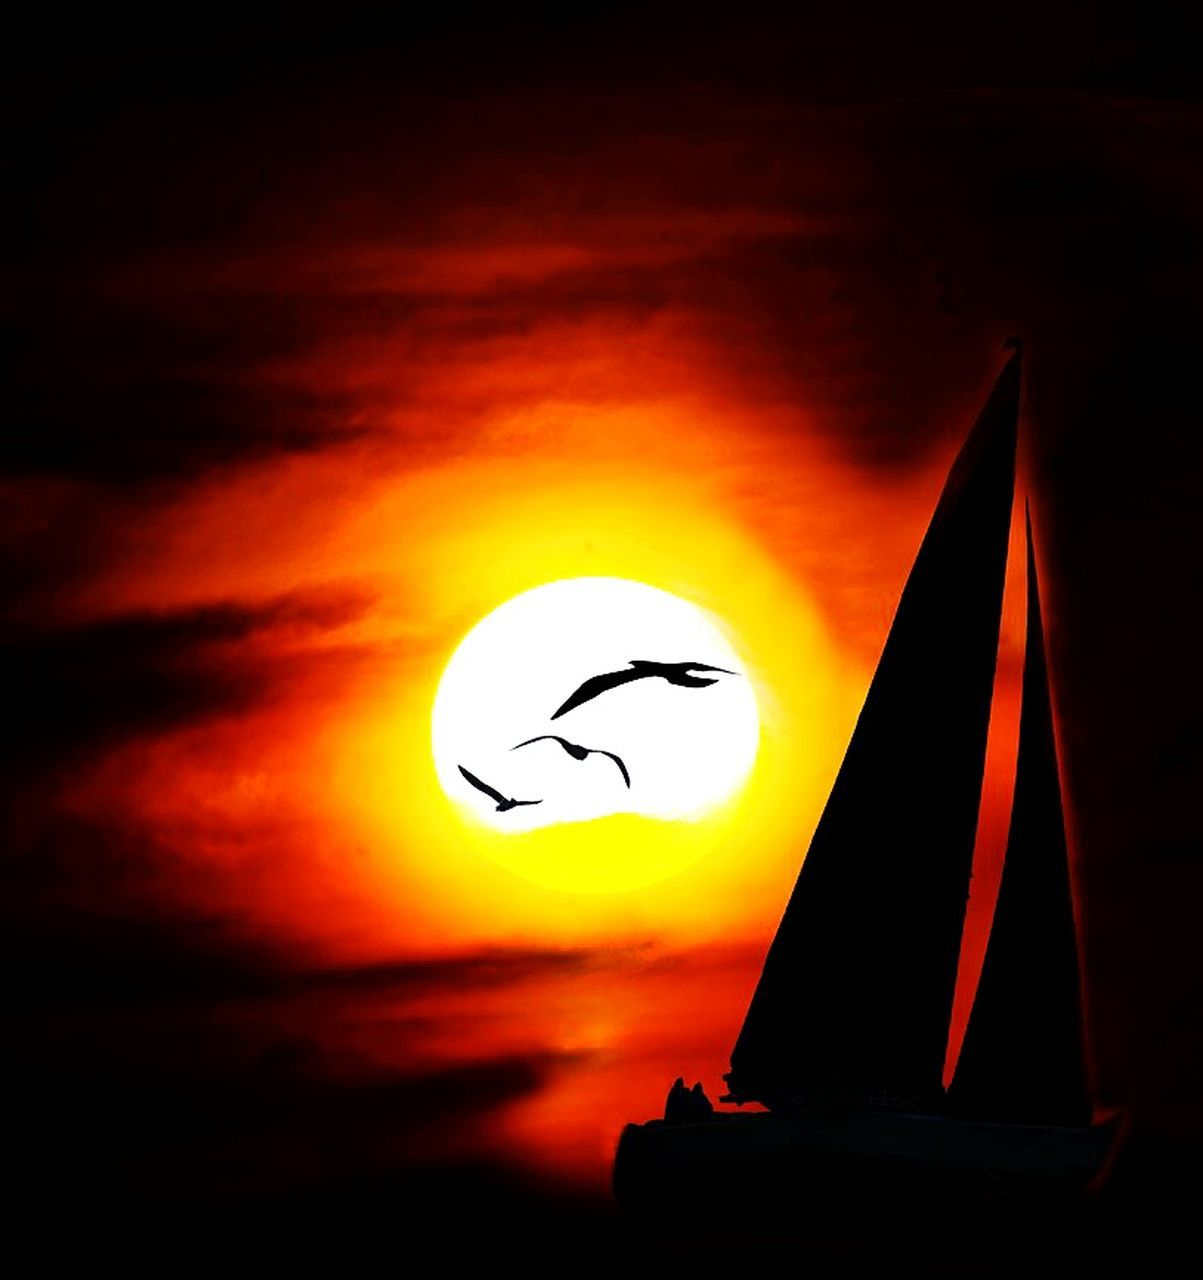 sunset, orange color, sun, silhouette, sky, cloud - sky, moon, nature, beauty in nature, no people, outdoors, astronomy